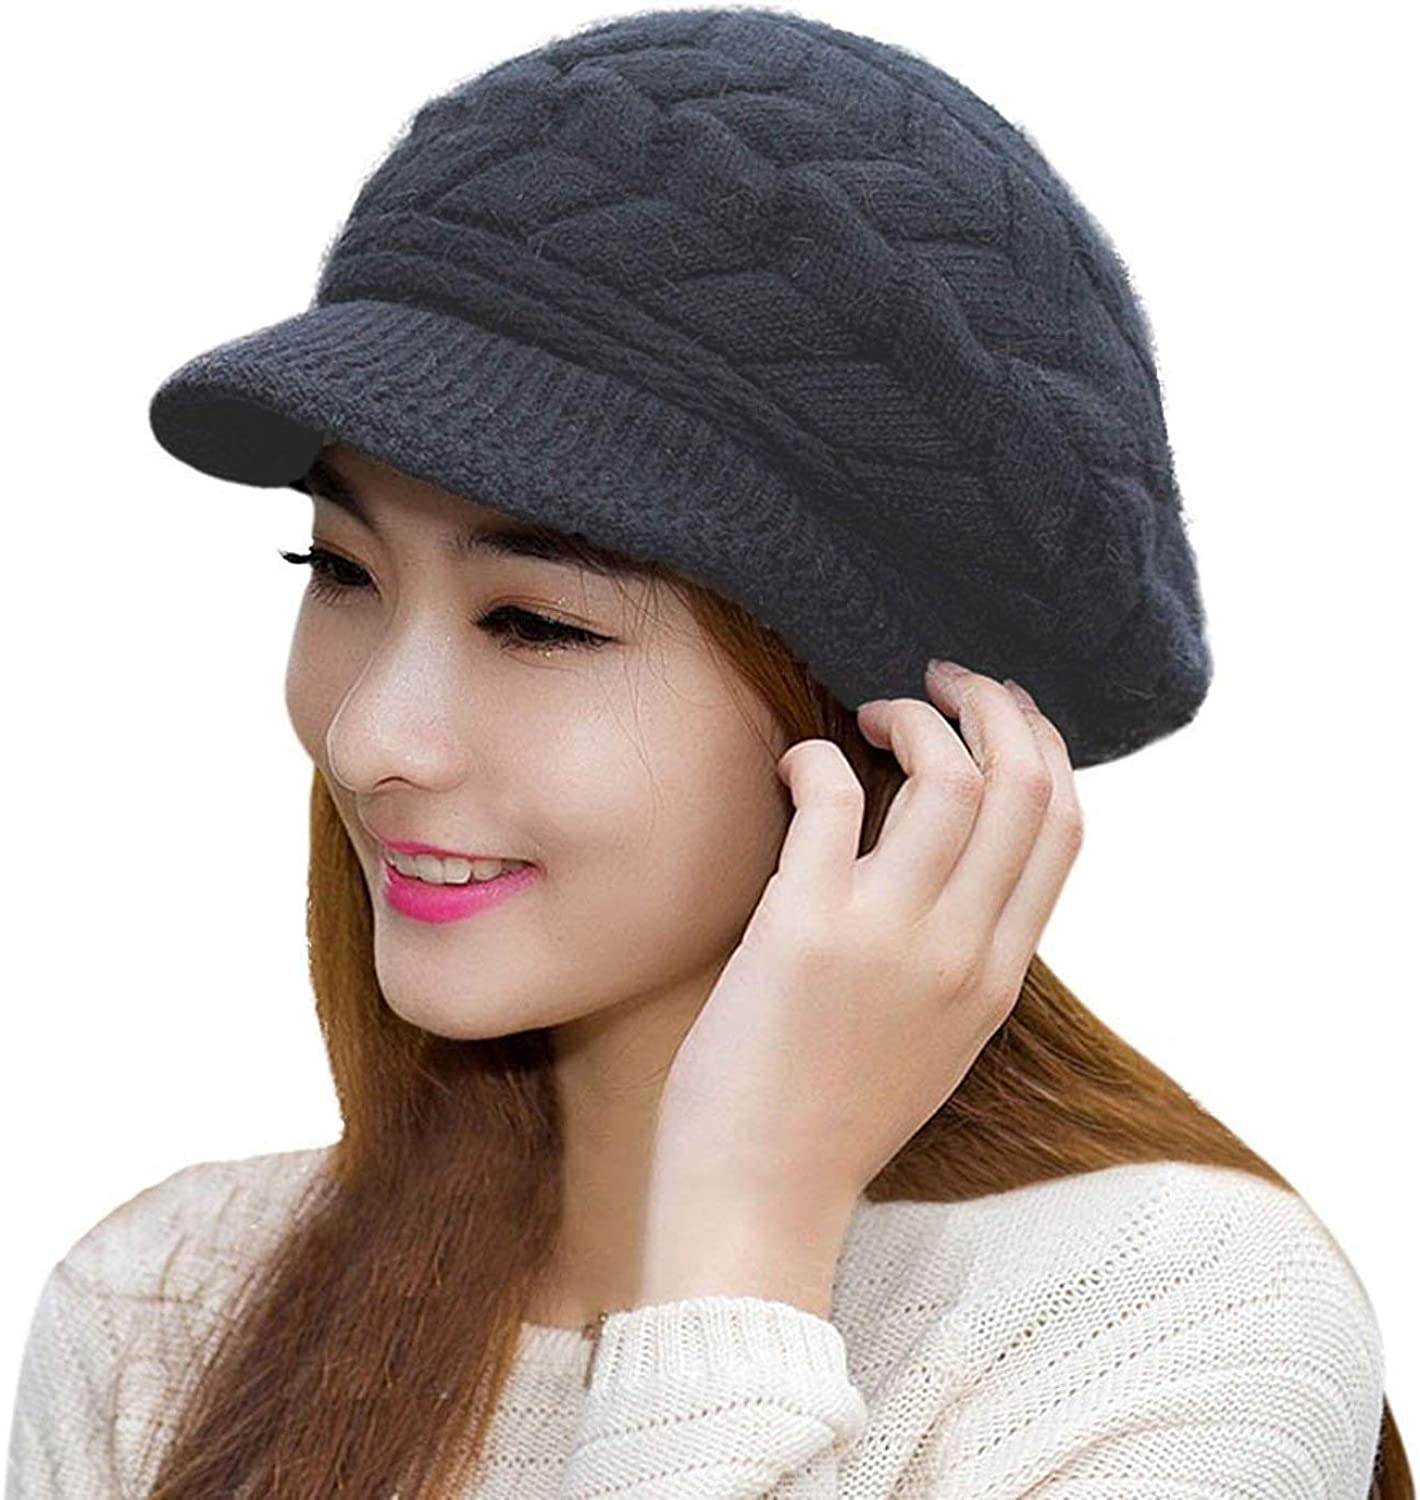 HINDAWI Womens Winter Hat Girls Warm Crochet Knit Direct stock discount Wool S Ranking TOP8 Outdoor